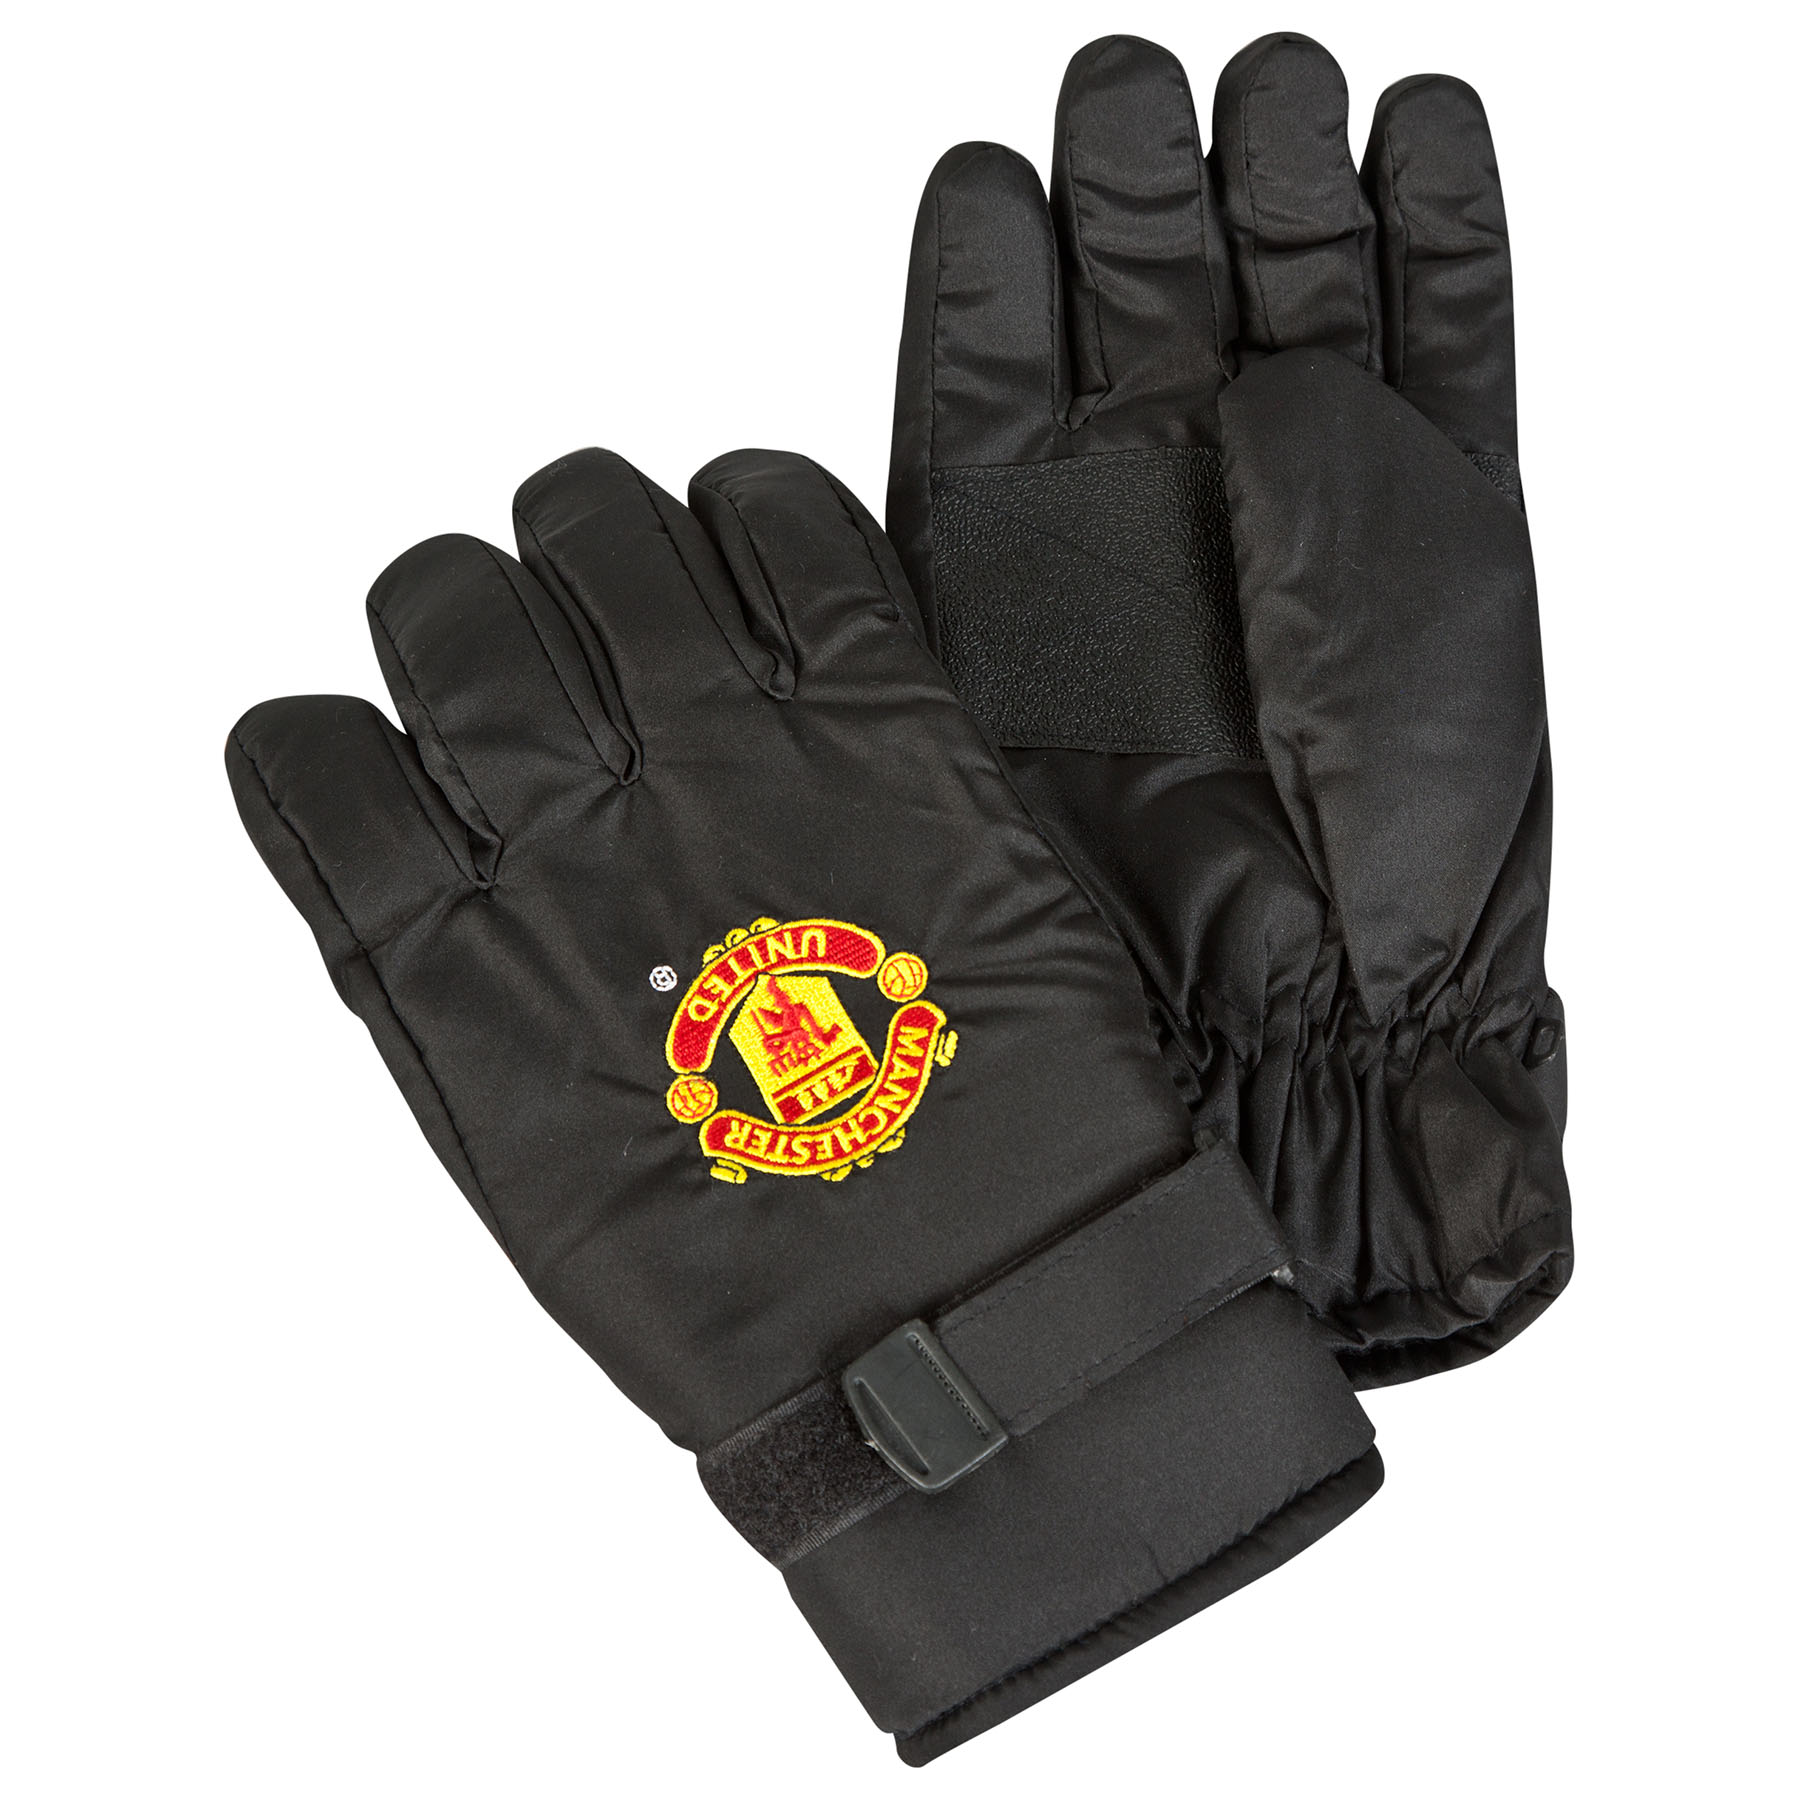 Manchester United Ski Gloves - Black - Adult